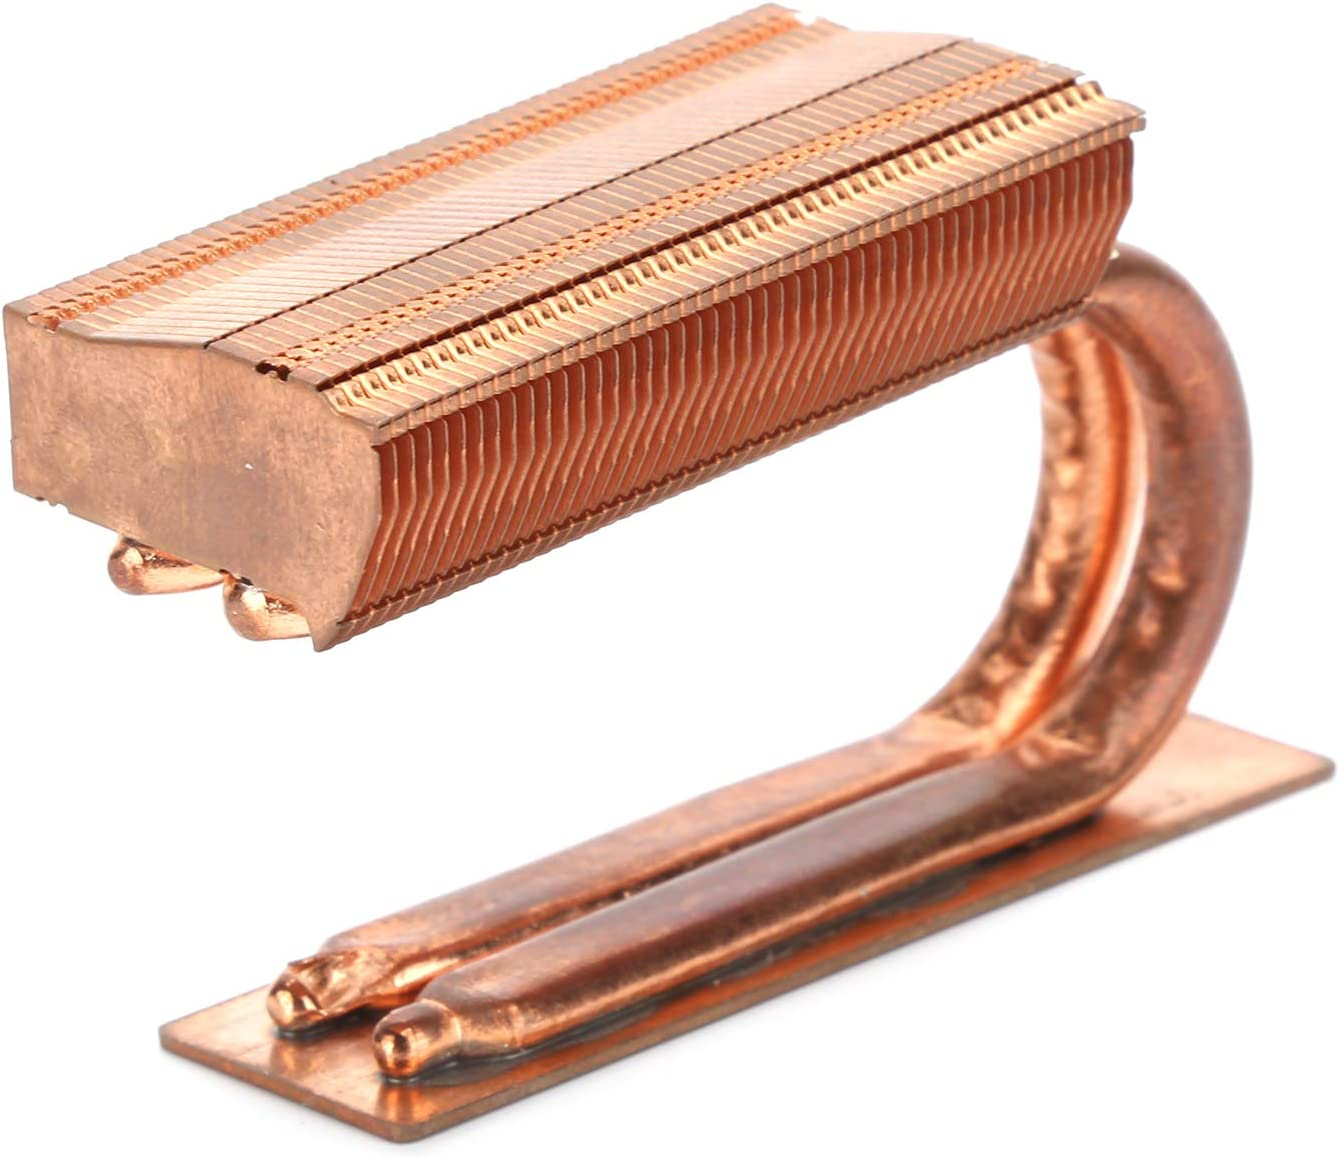 gostcai Solid State Drive Cooler,Drive Heat Sink,Copper Cooling Radiator,2 Heat Pipes,Fast Heat Dissipation and Easy Installation,for M.2 2280 SSD.